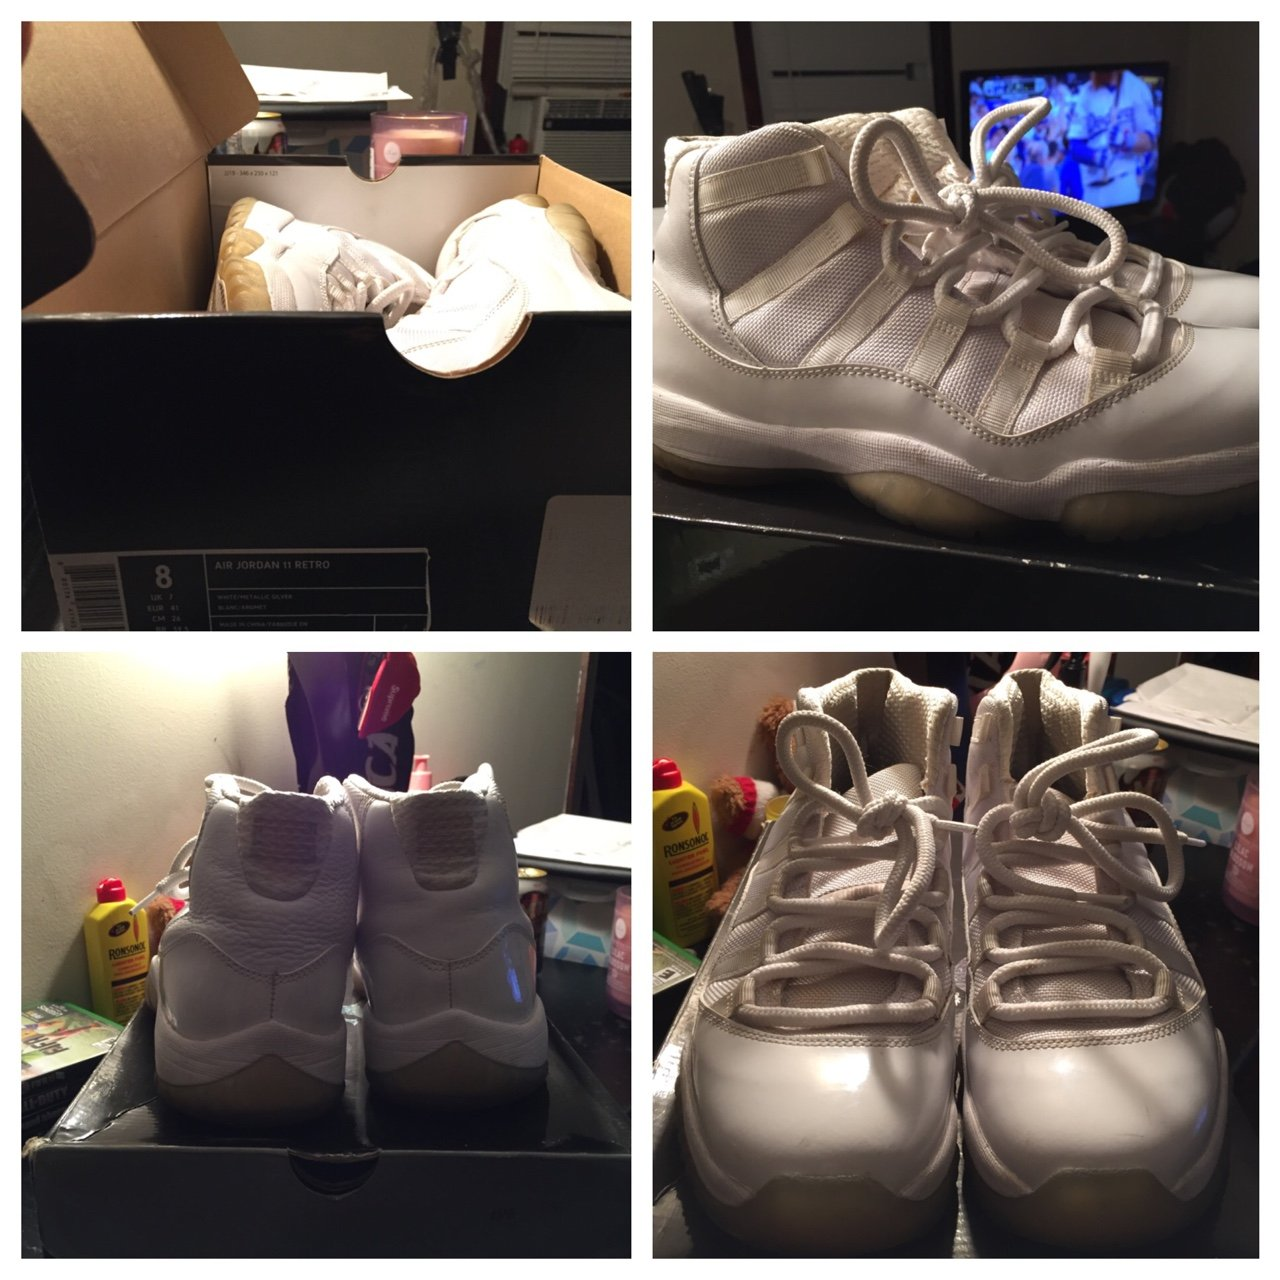 437c347d4c9b White anniversary 11s size 8 8 10 condition clean just dirty - Depop